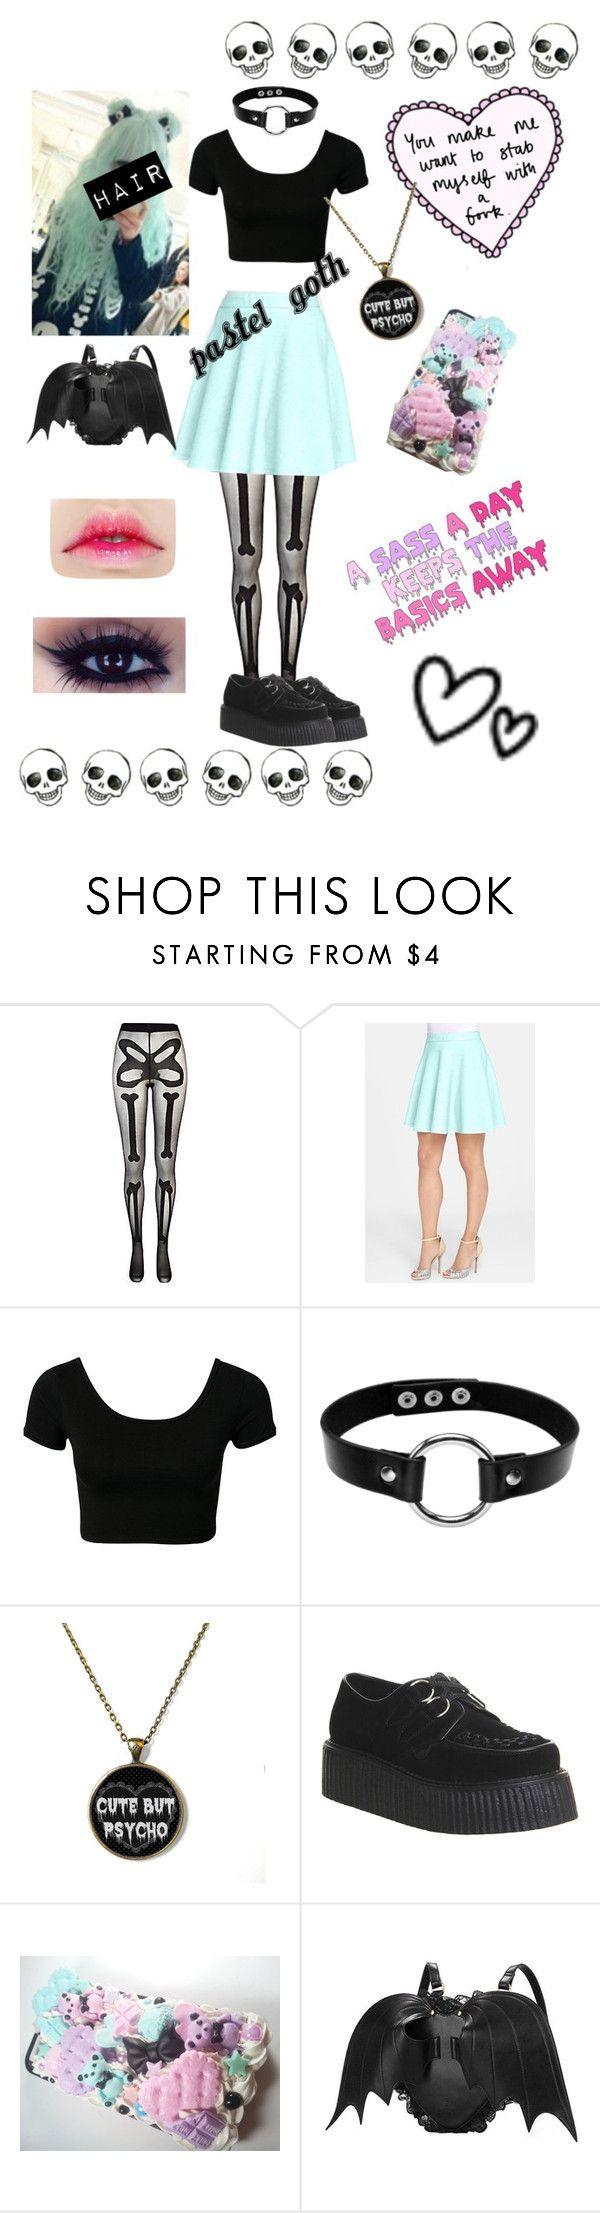 """""""Pastel goth"""" by teenagederpbagg ❤ liked on Polyvore featuring River Island, Catherine Catherine Malandrino and Underground"""